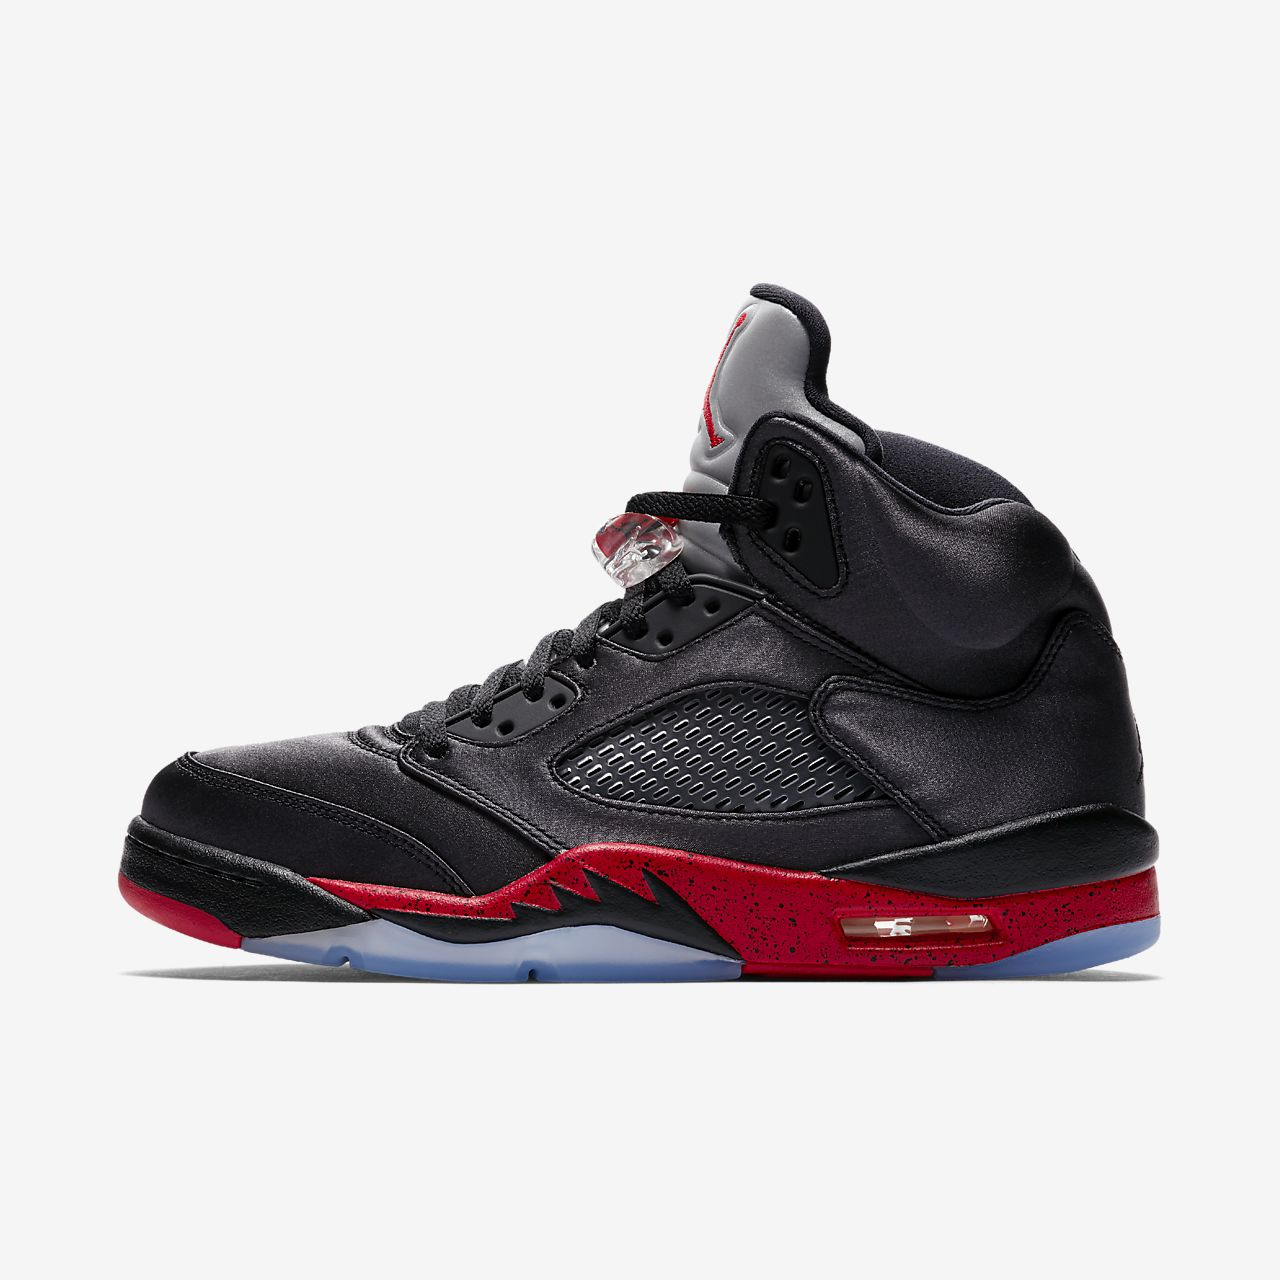 premium selection ae8eb 8cdde Air Jordan 5 Retro